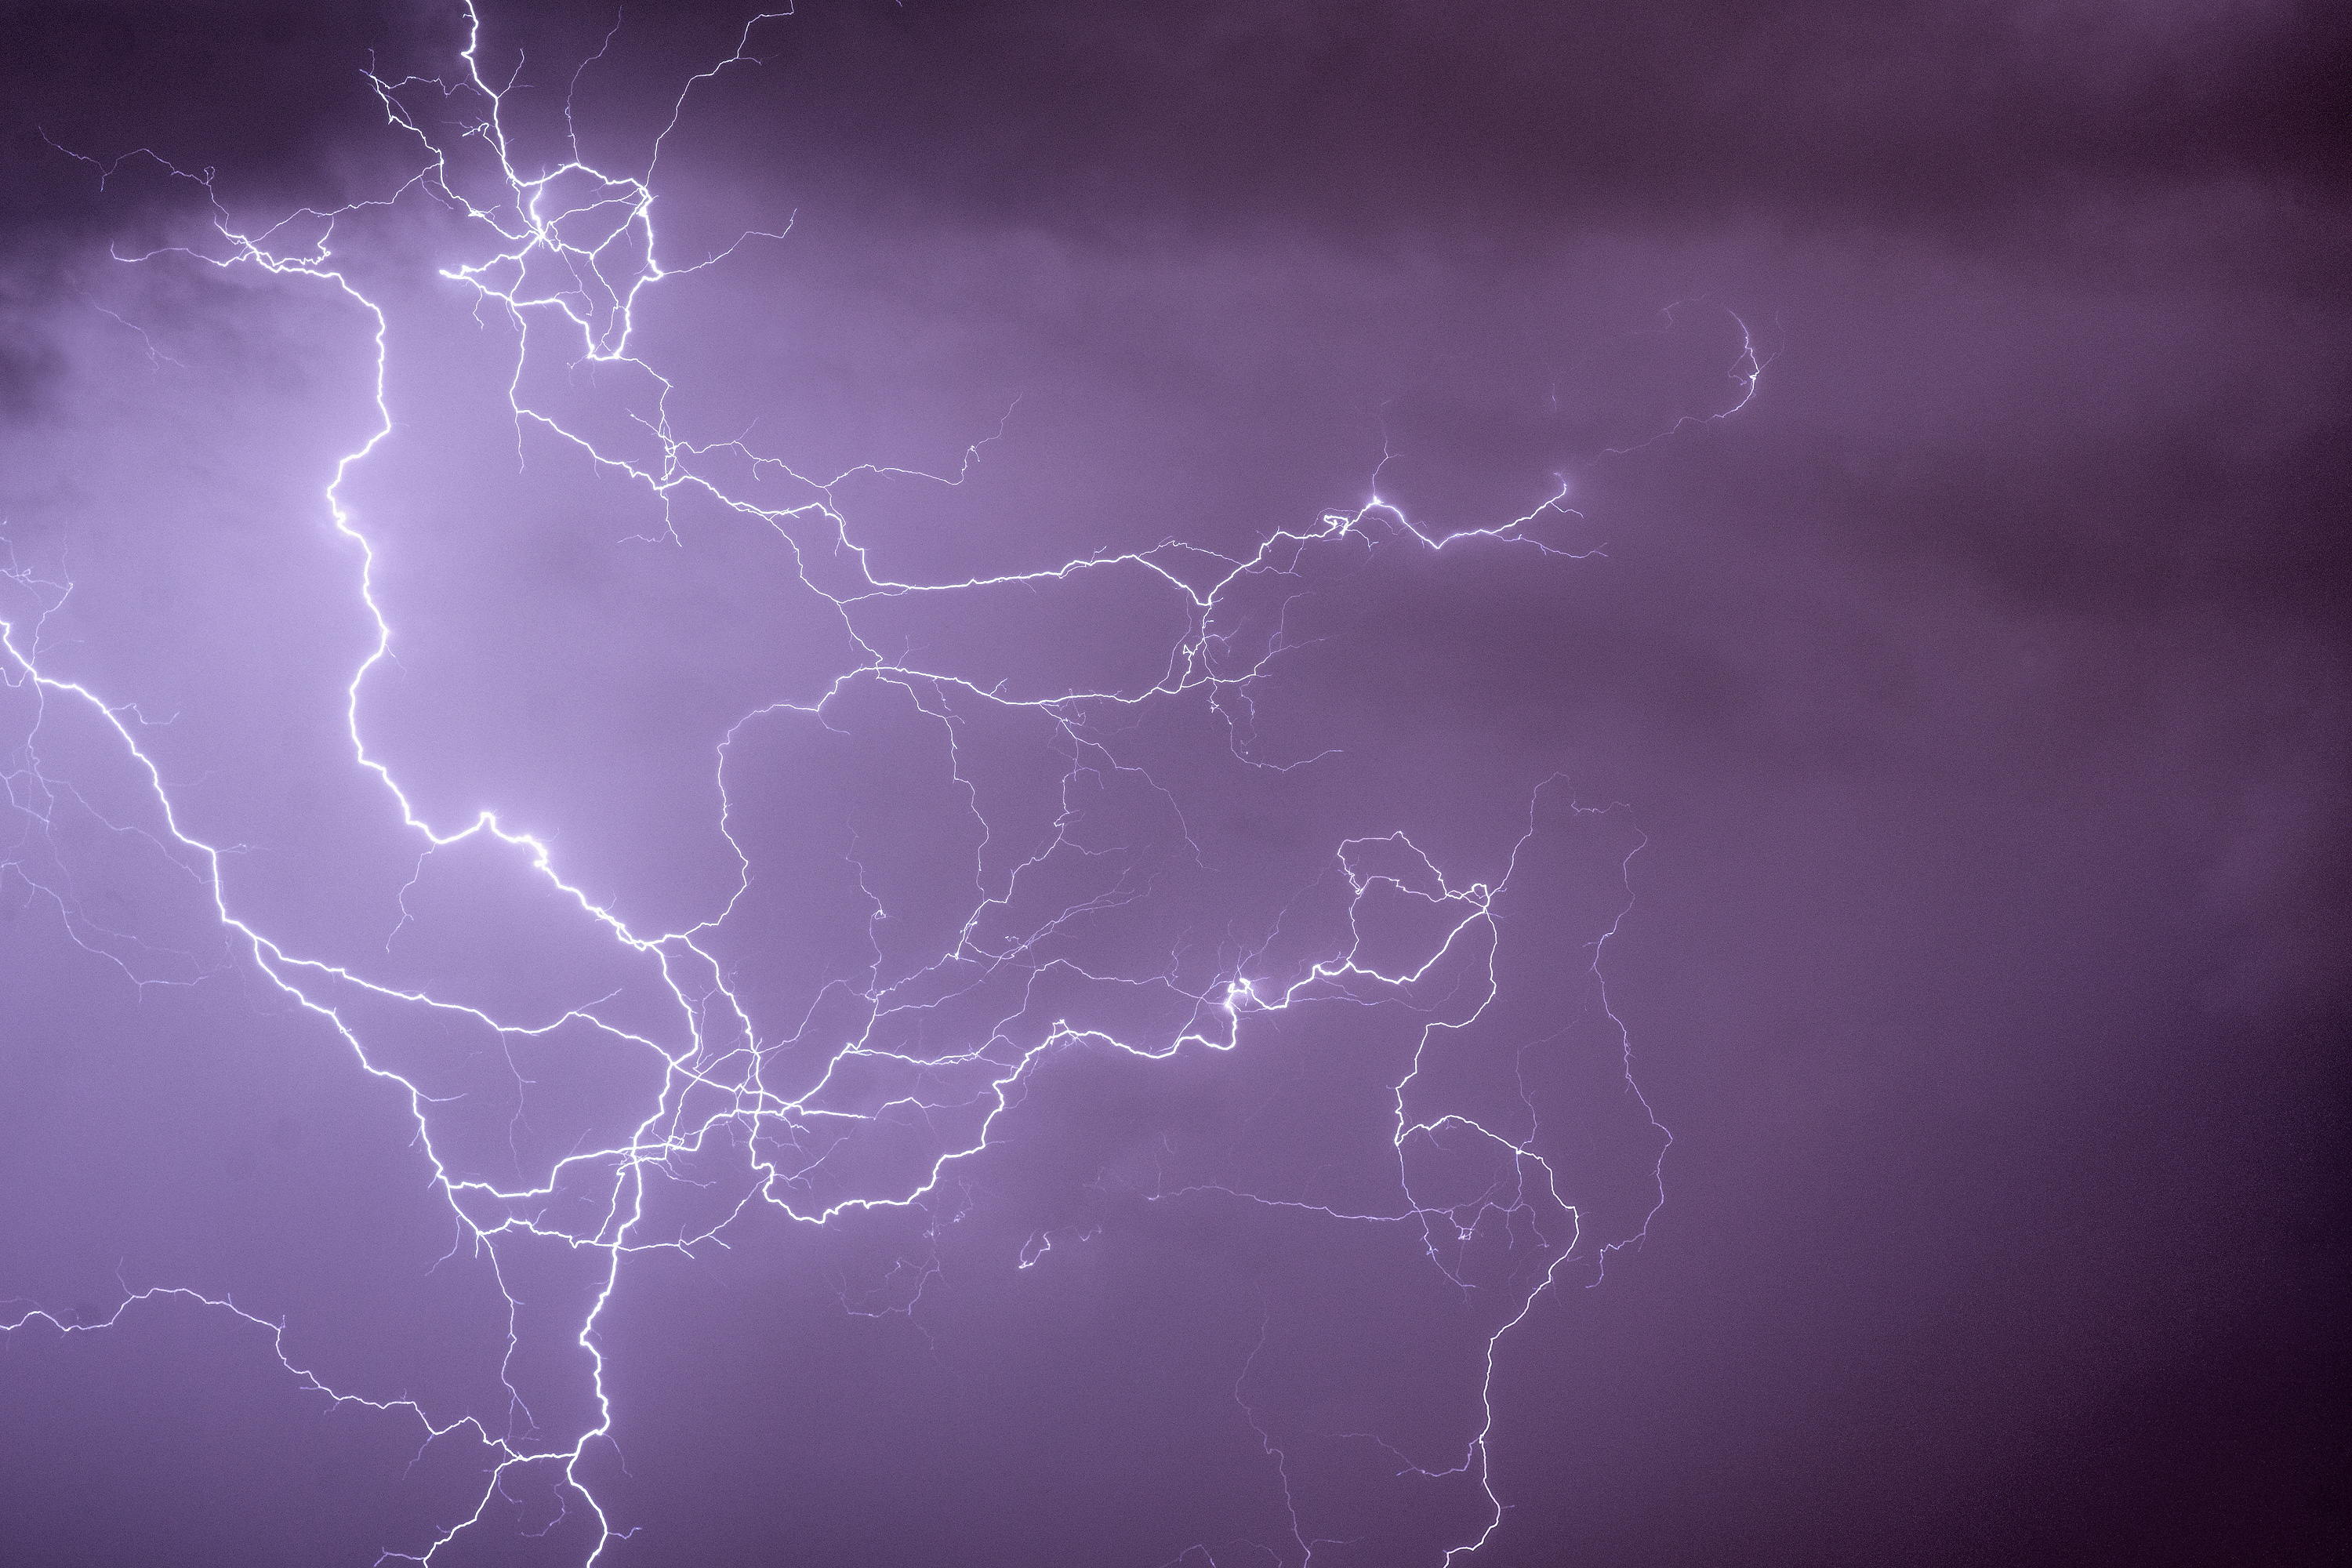 Cloud-to-cloud ramified lightning discharges